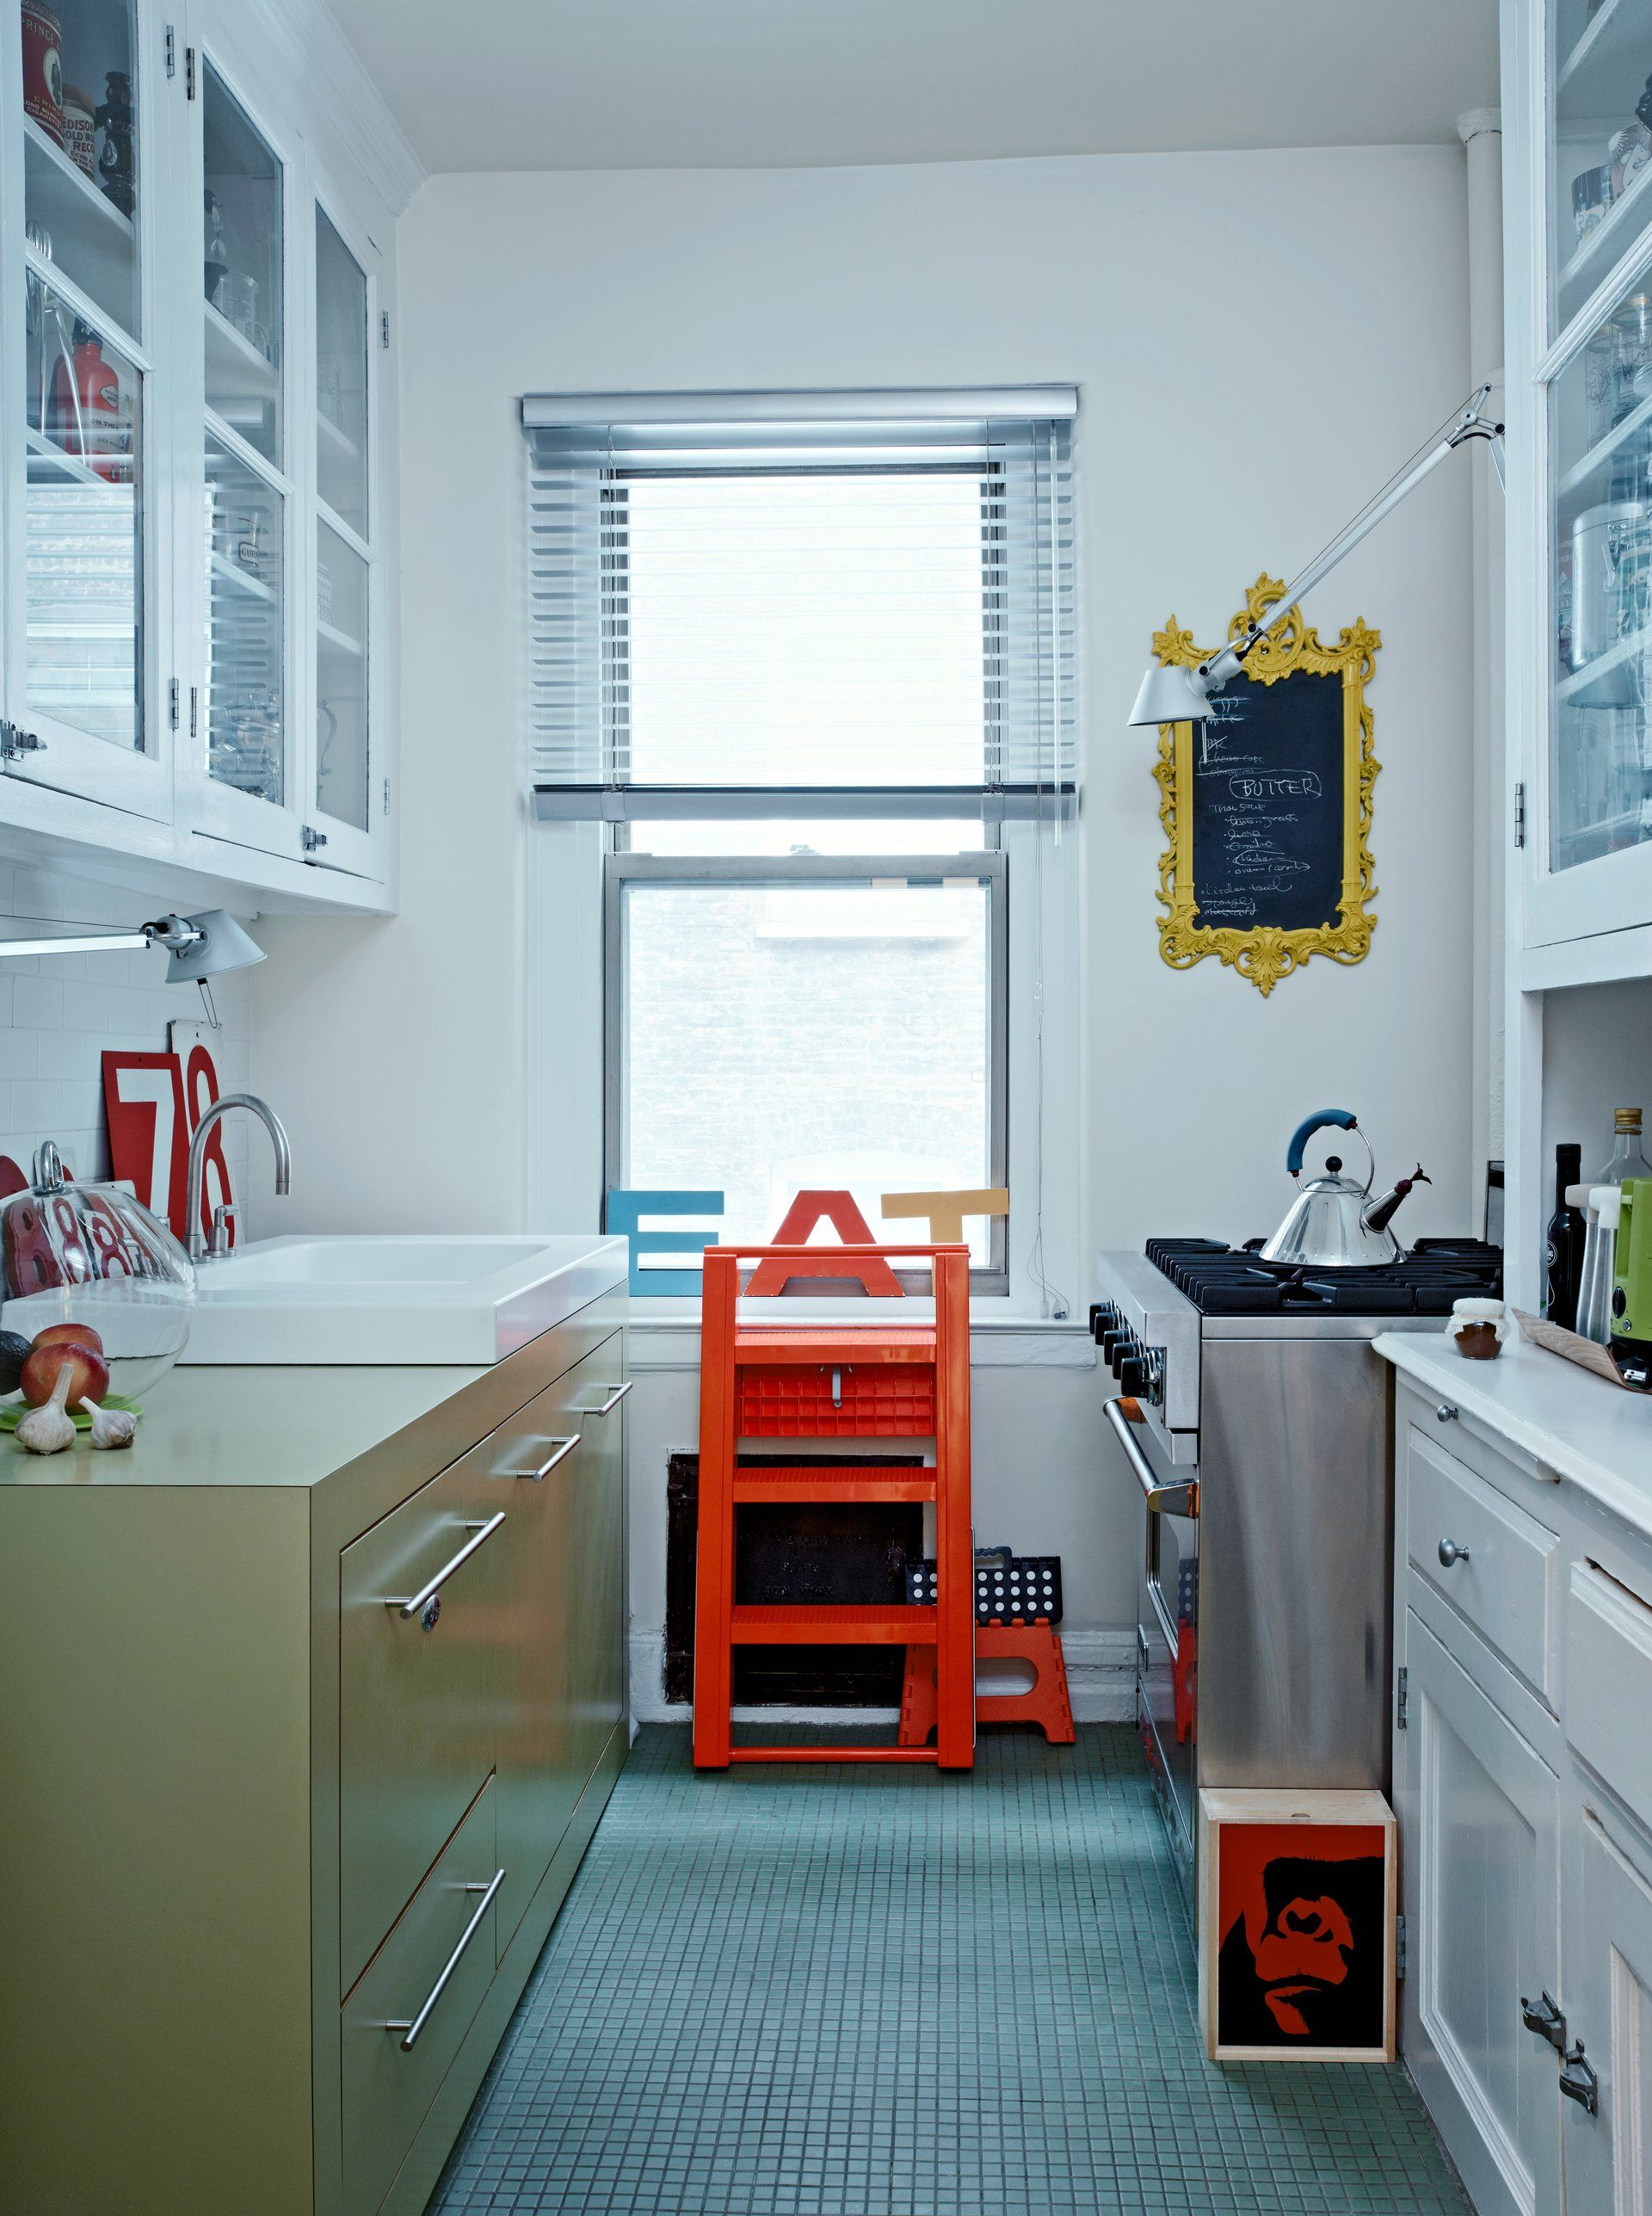 Manhattan makeover | Yuko shimizu, Manhattan and Apartments